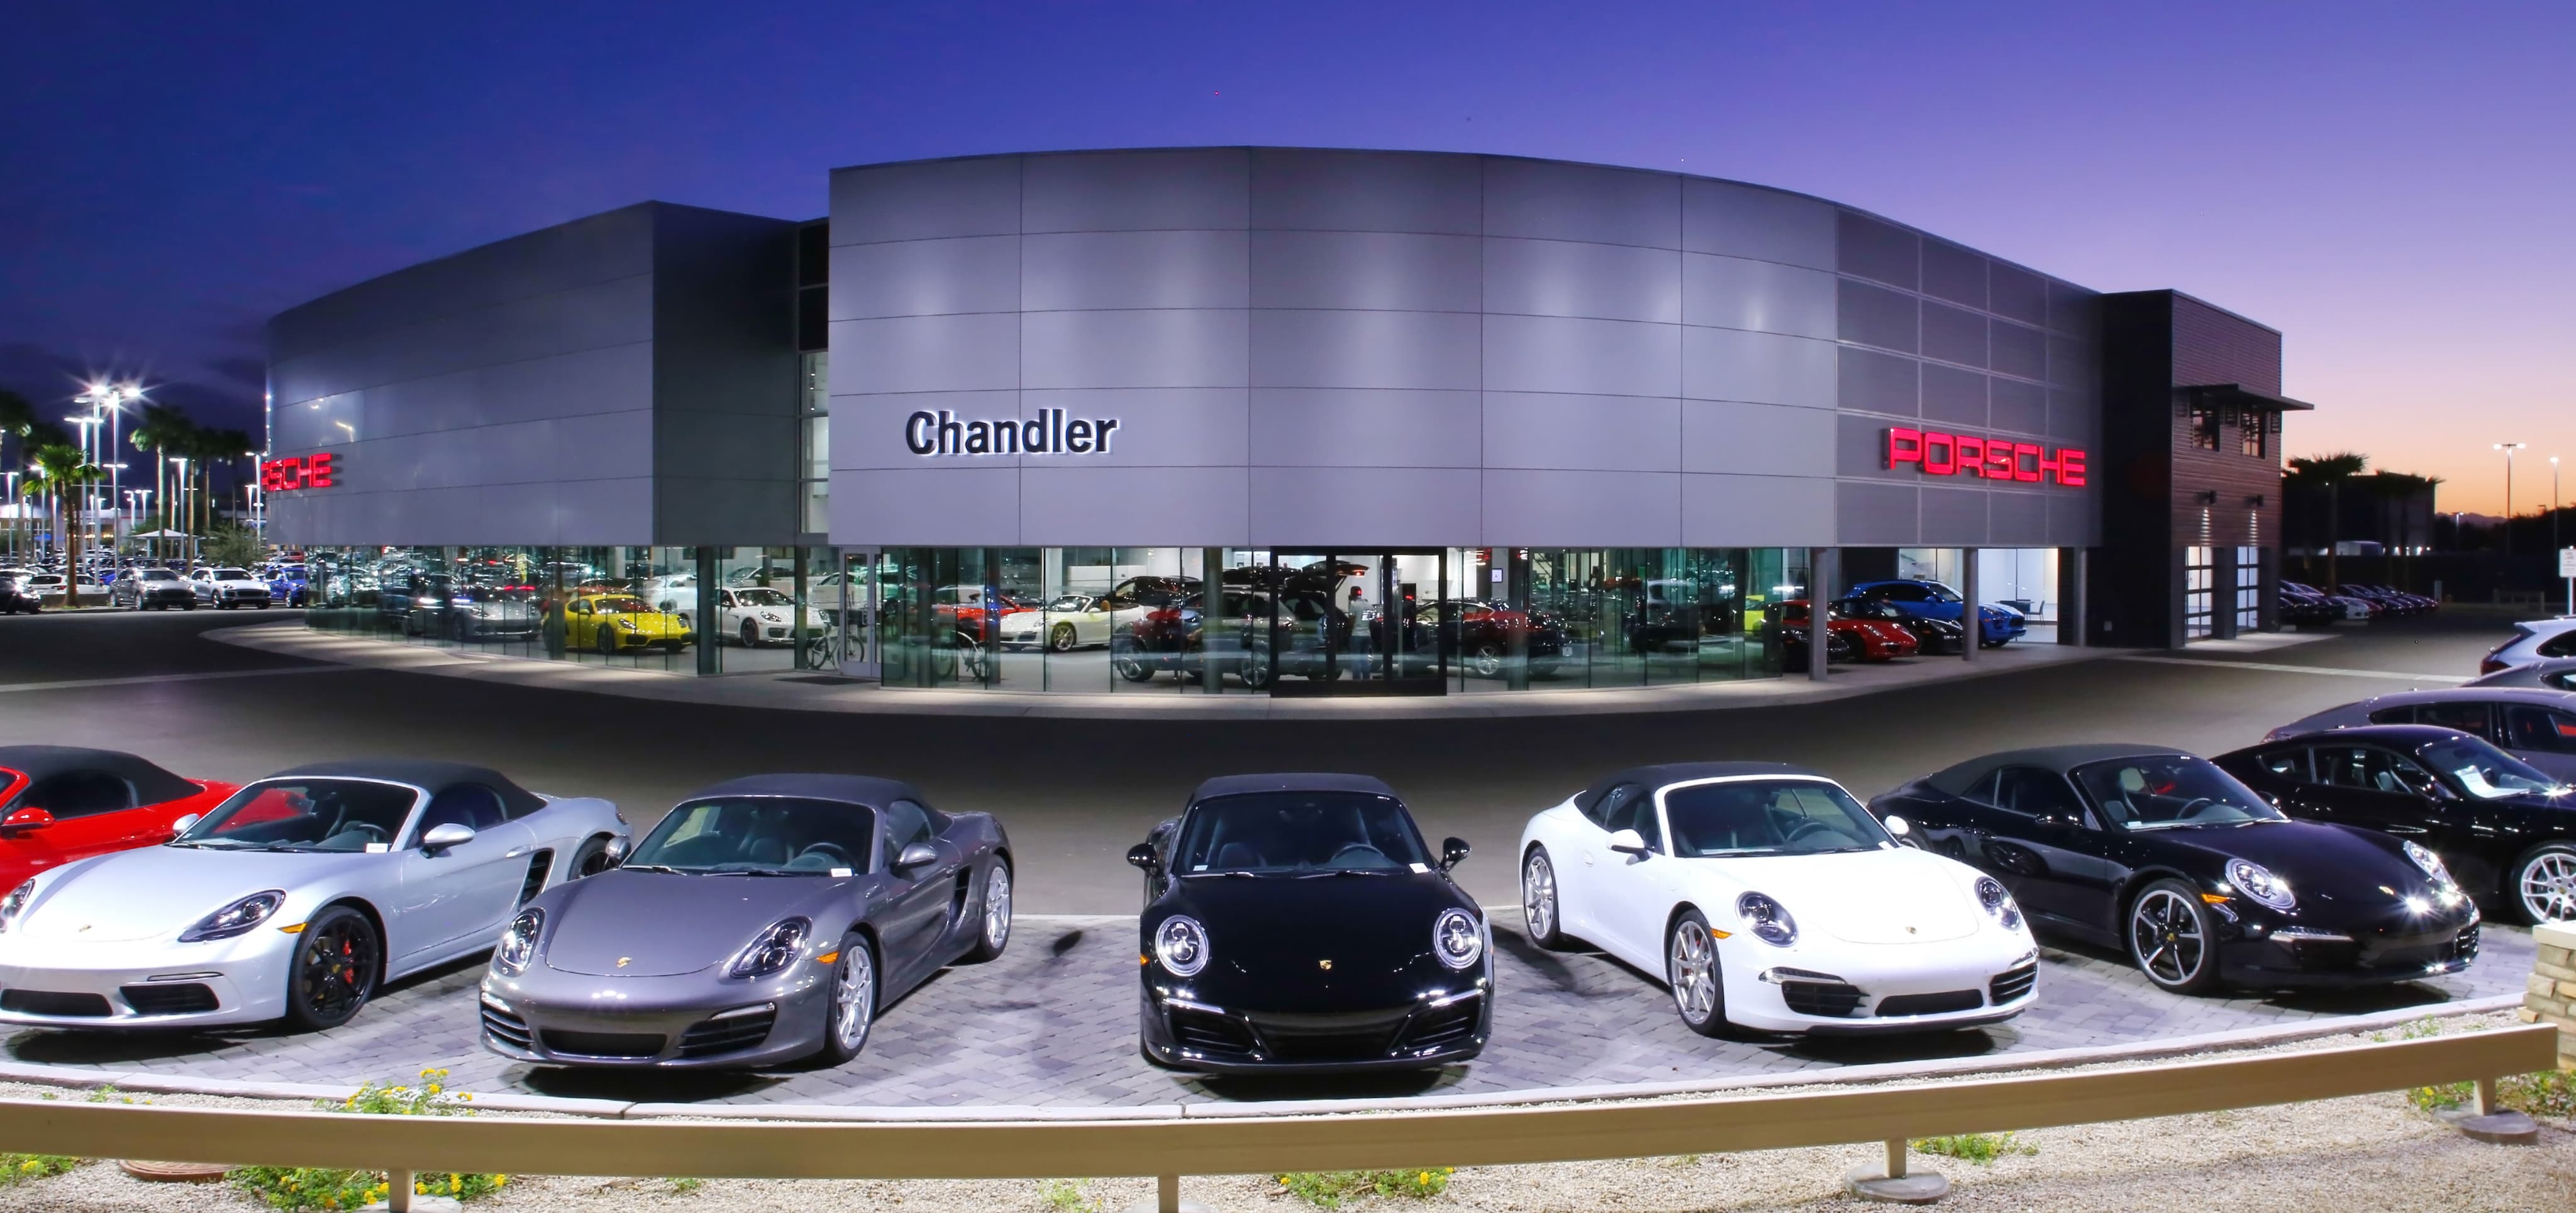 about porsche chandler proudly supplying new porsche models in chandler arizona